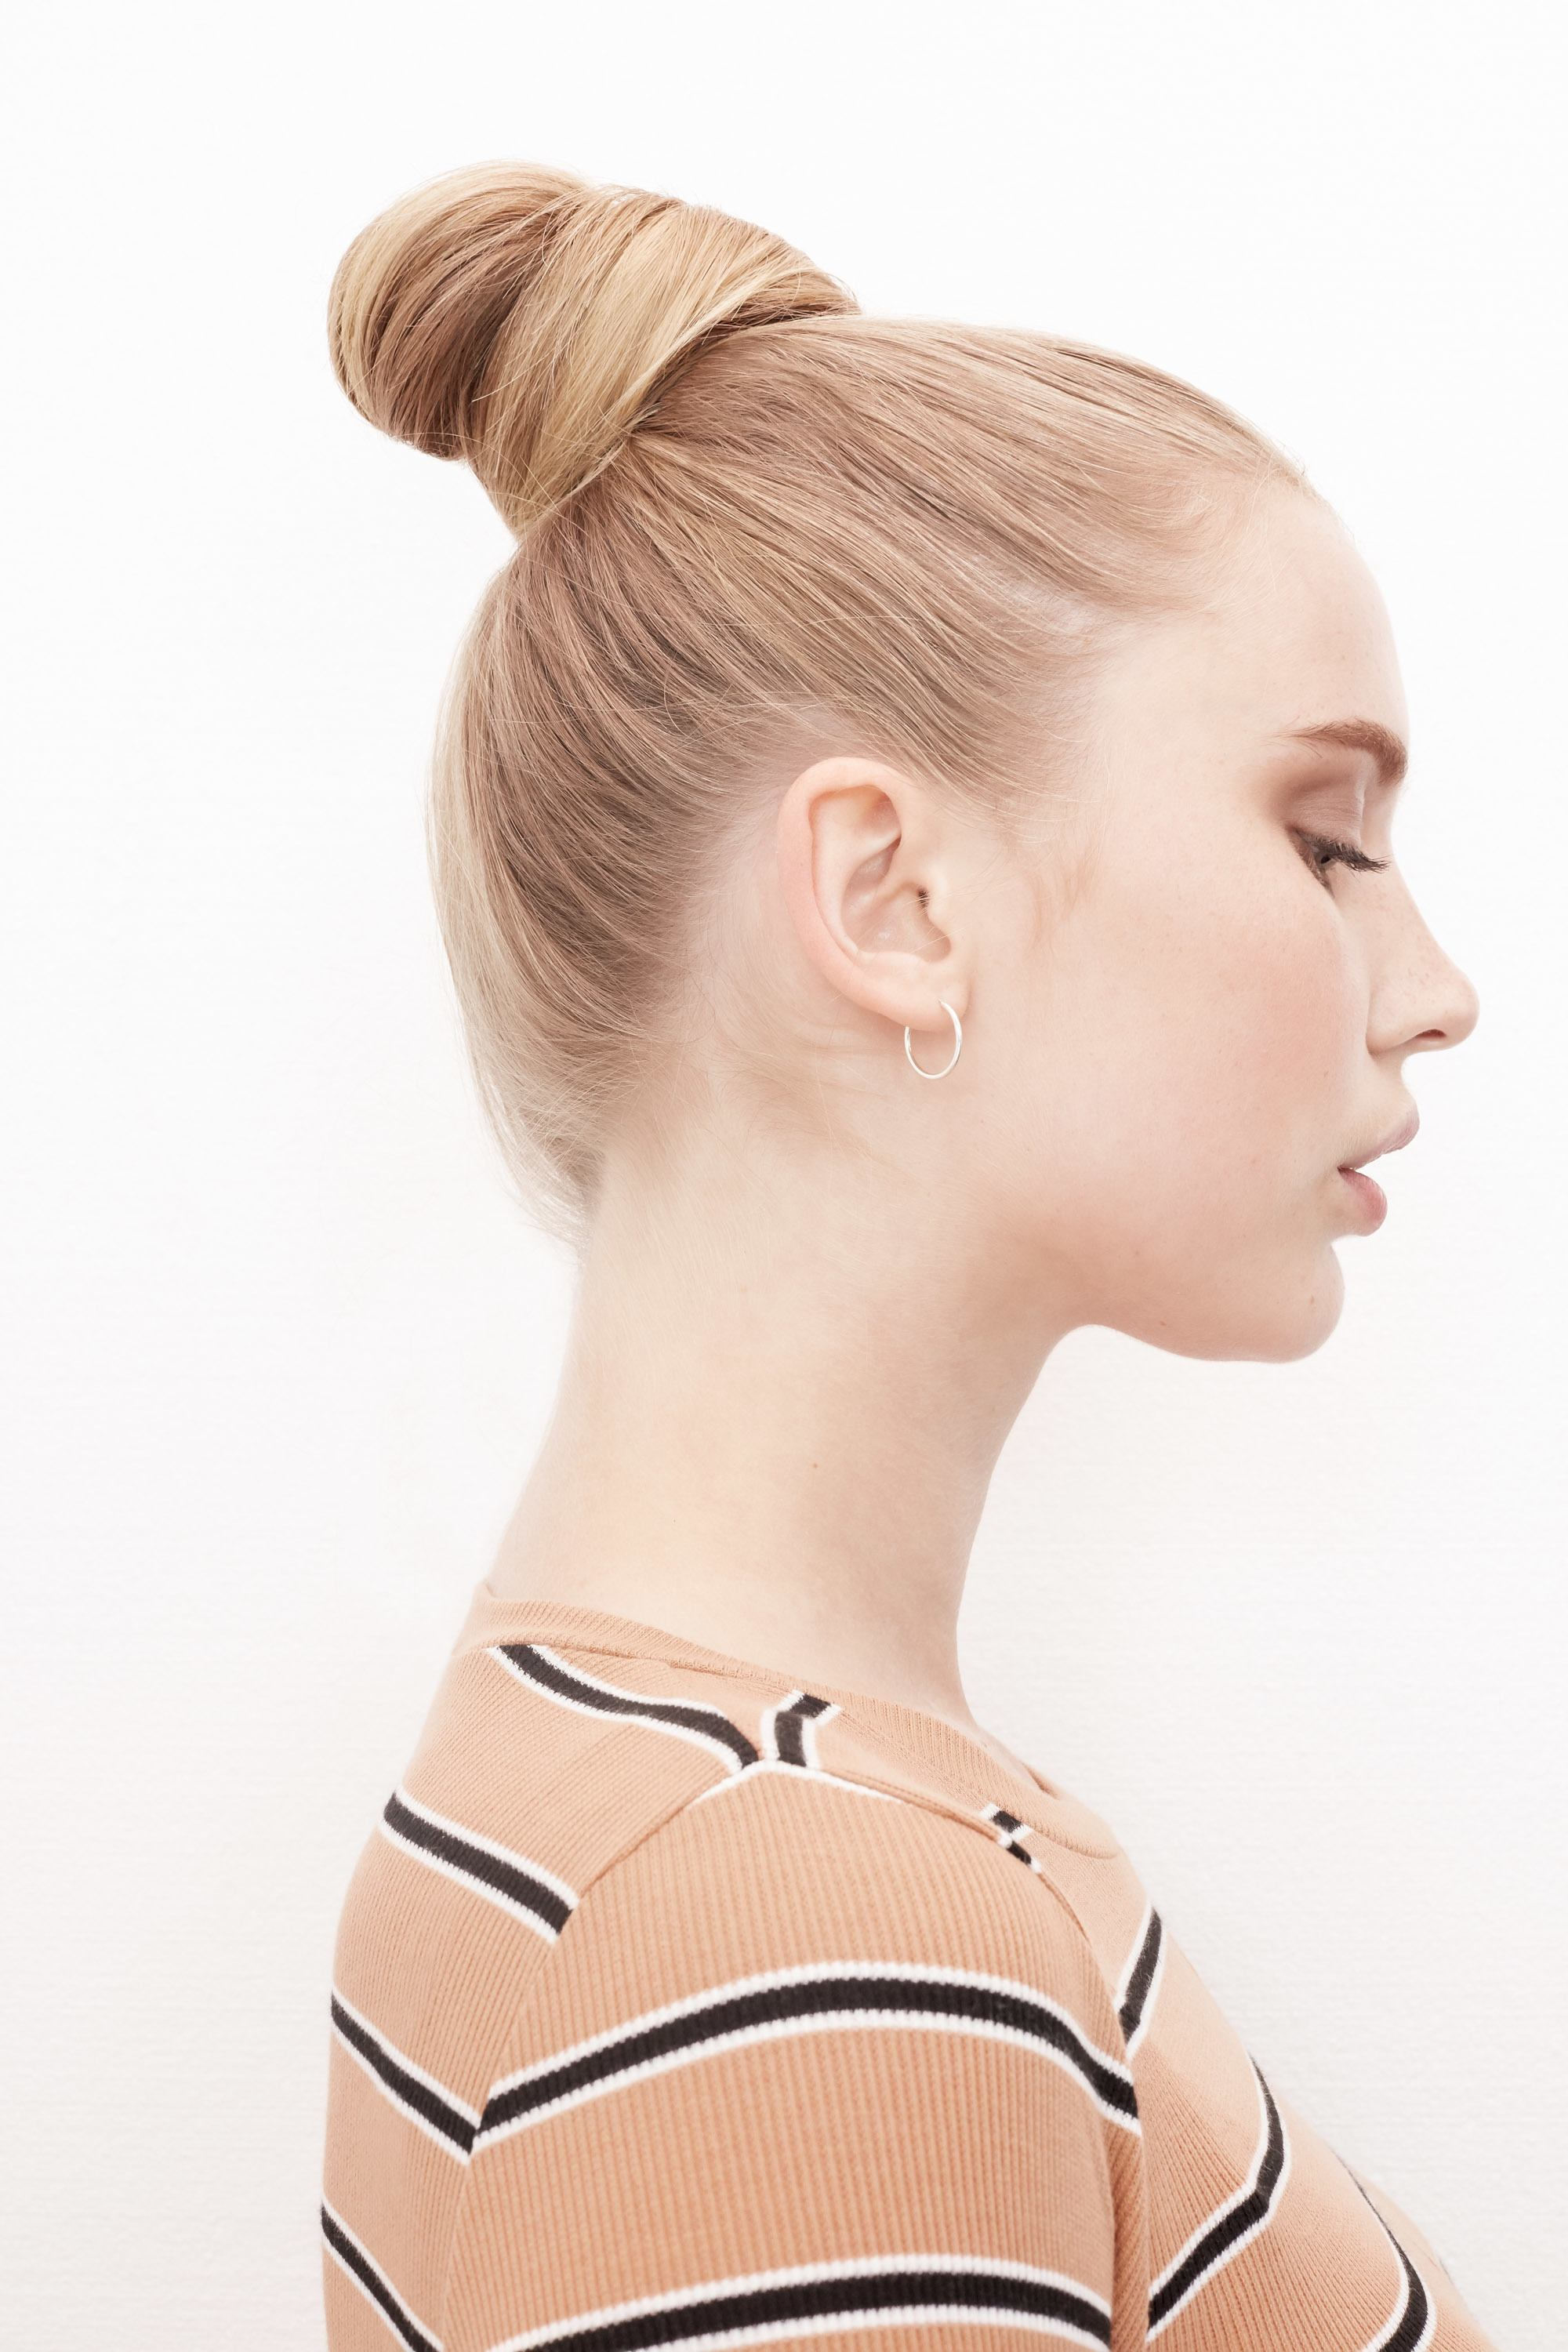 Blonde woman with a top knot hairstyle